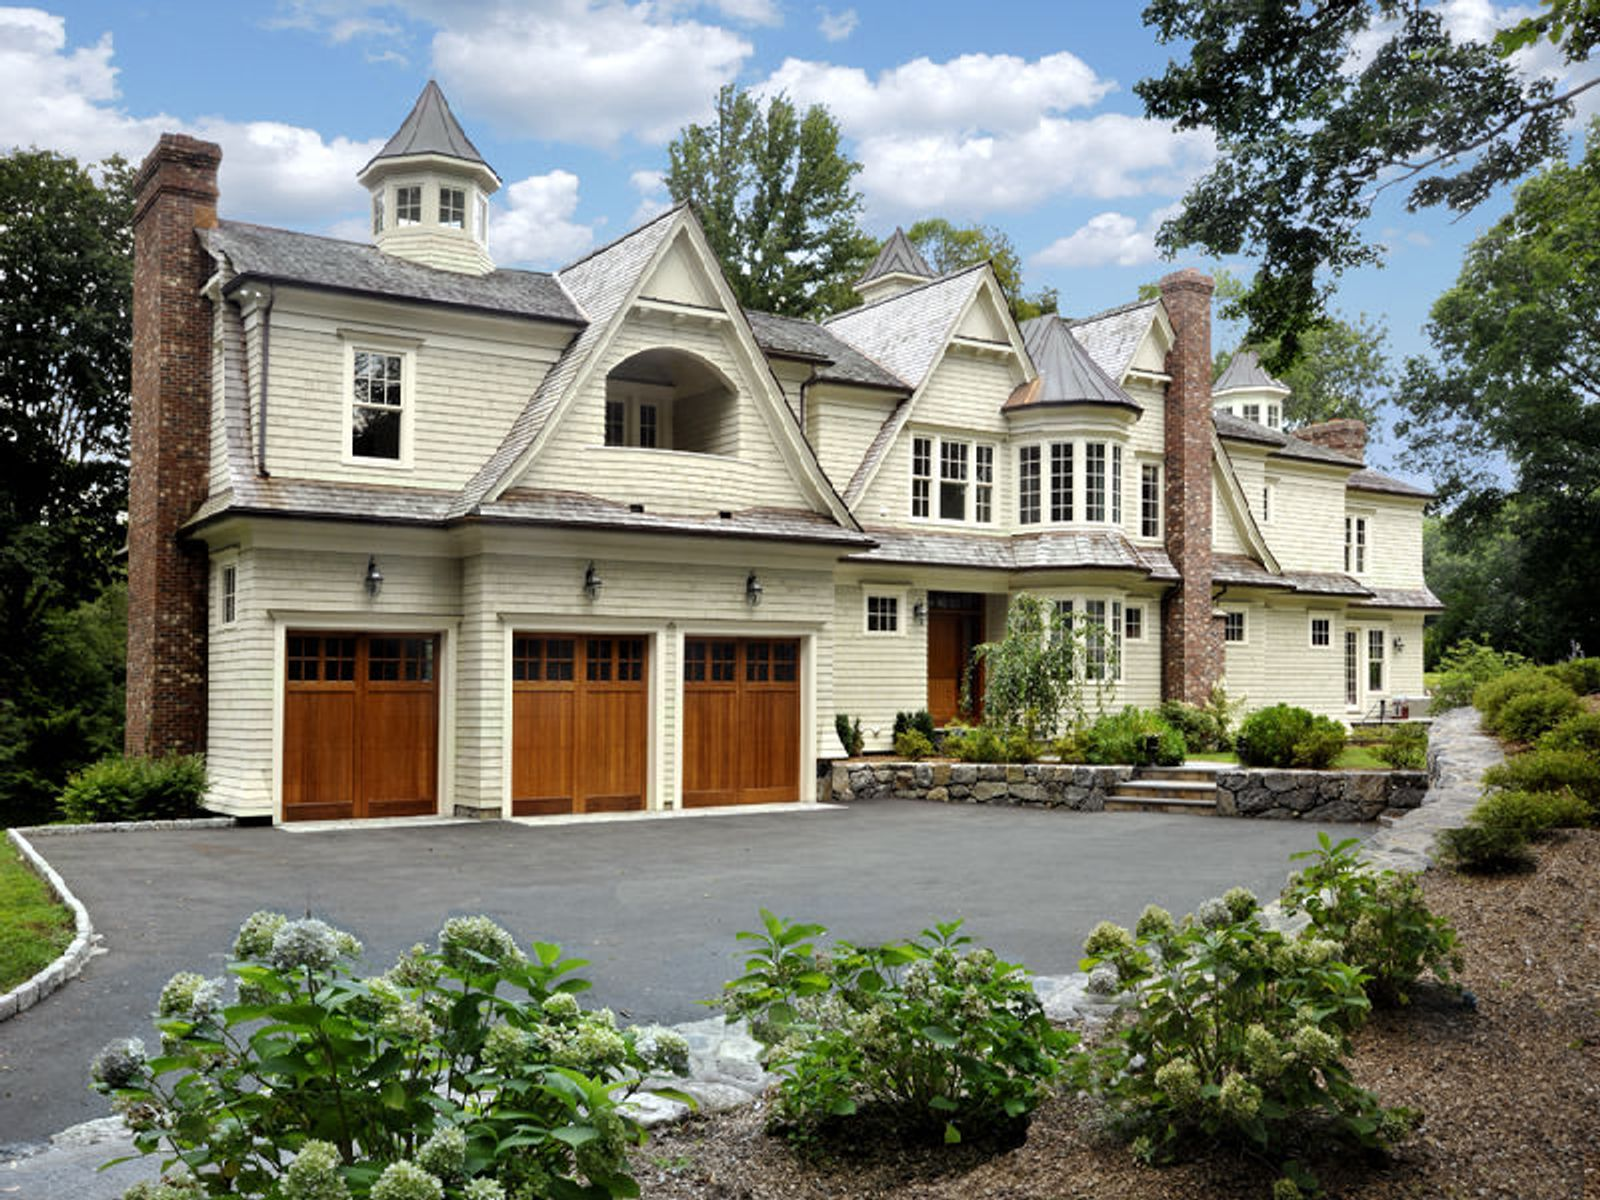 Shingle Style Close to Town, Greenwich CT Single Family Home - Greenwich Real Estate